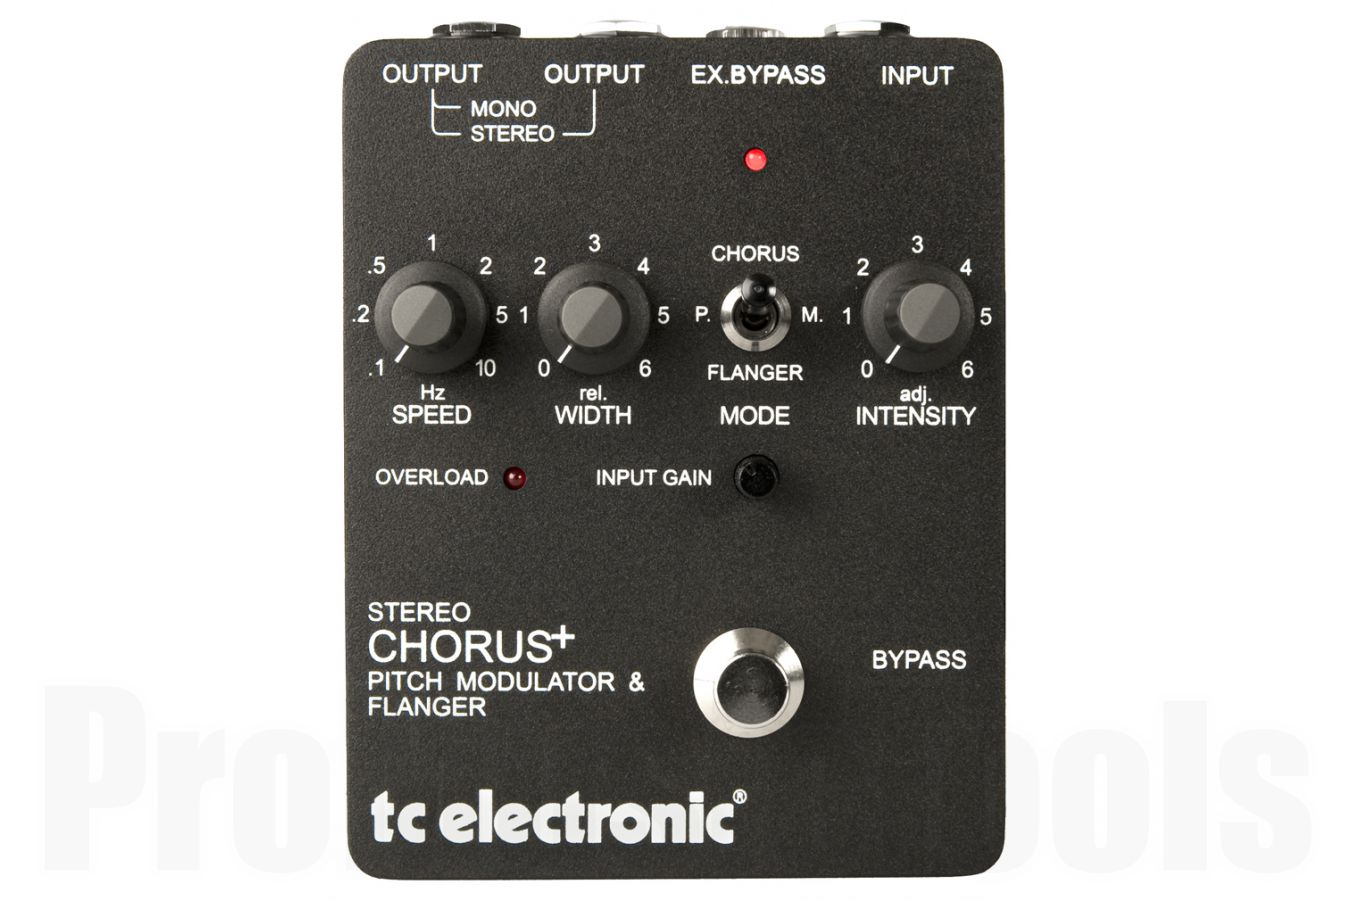 TC Electronic SCF Classic Analog Stereo Chorus / Flanger / Pitch Modulator - b-stock (1x opened box)